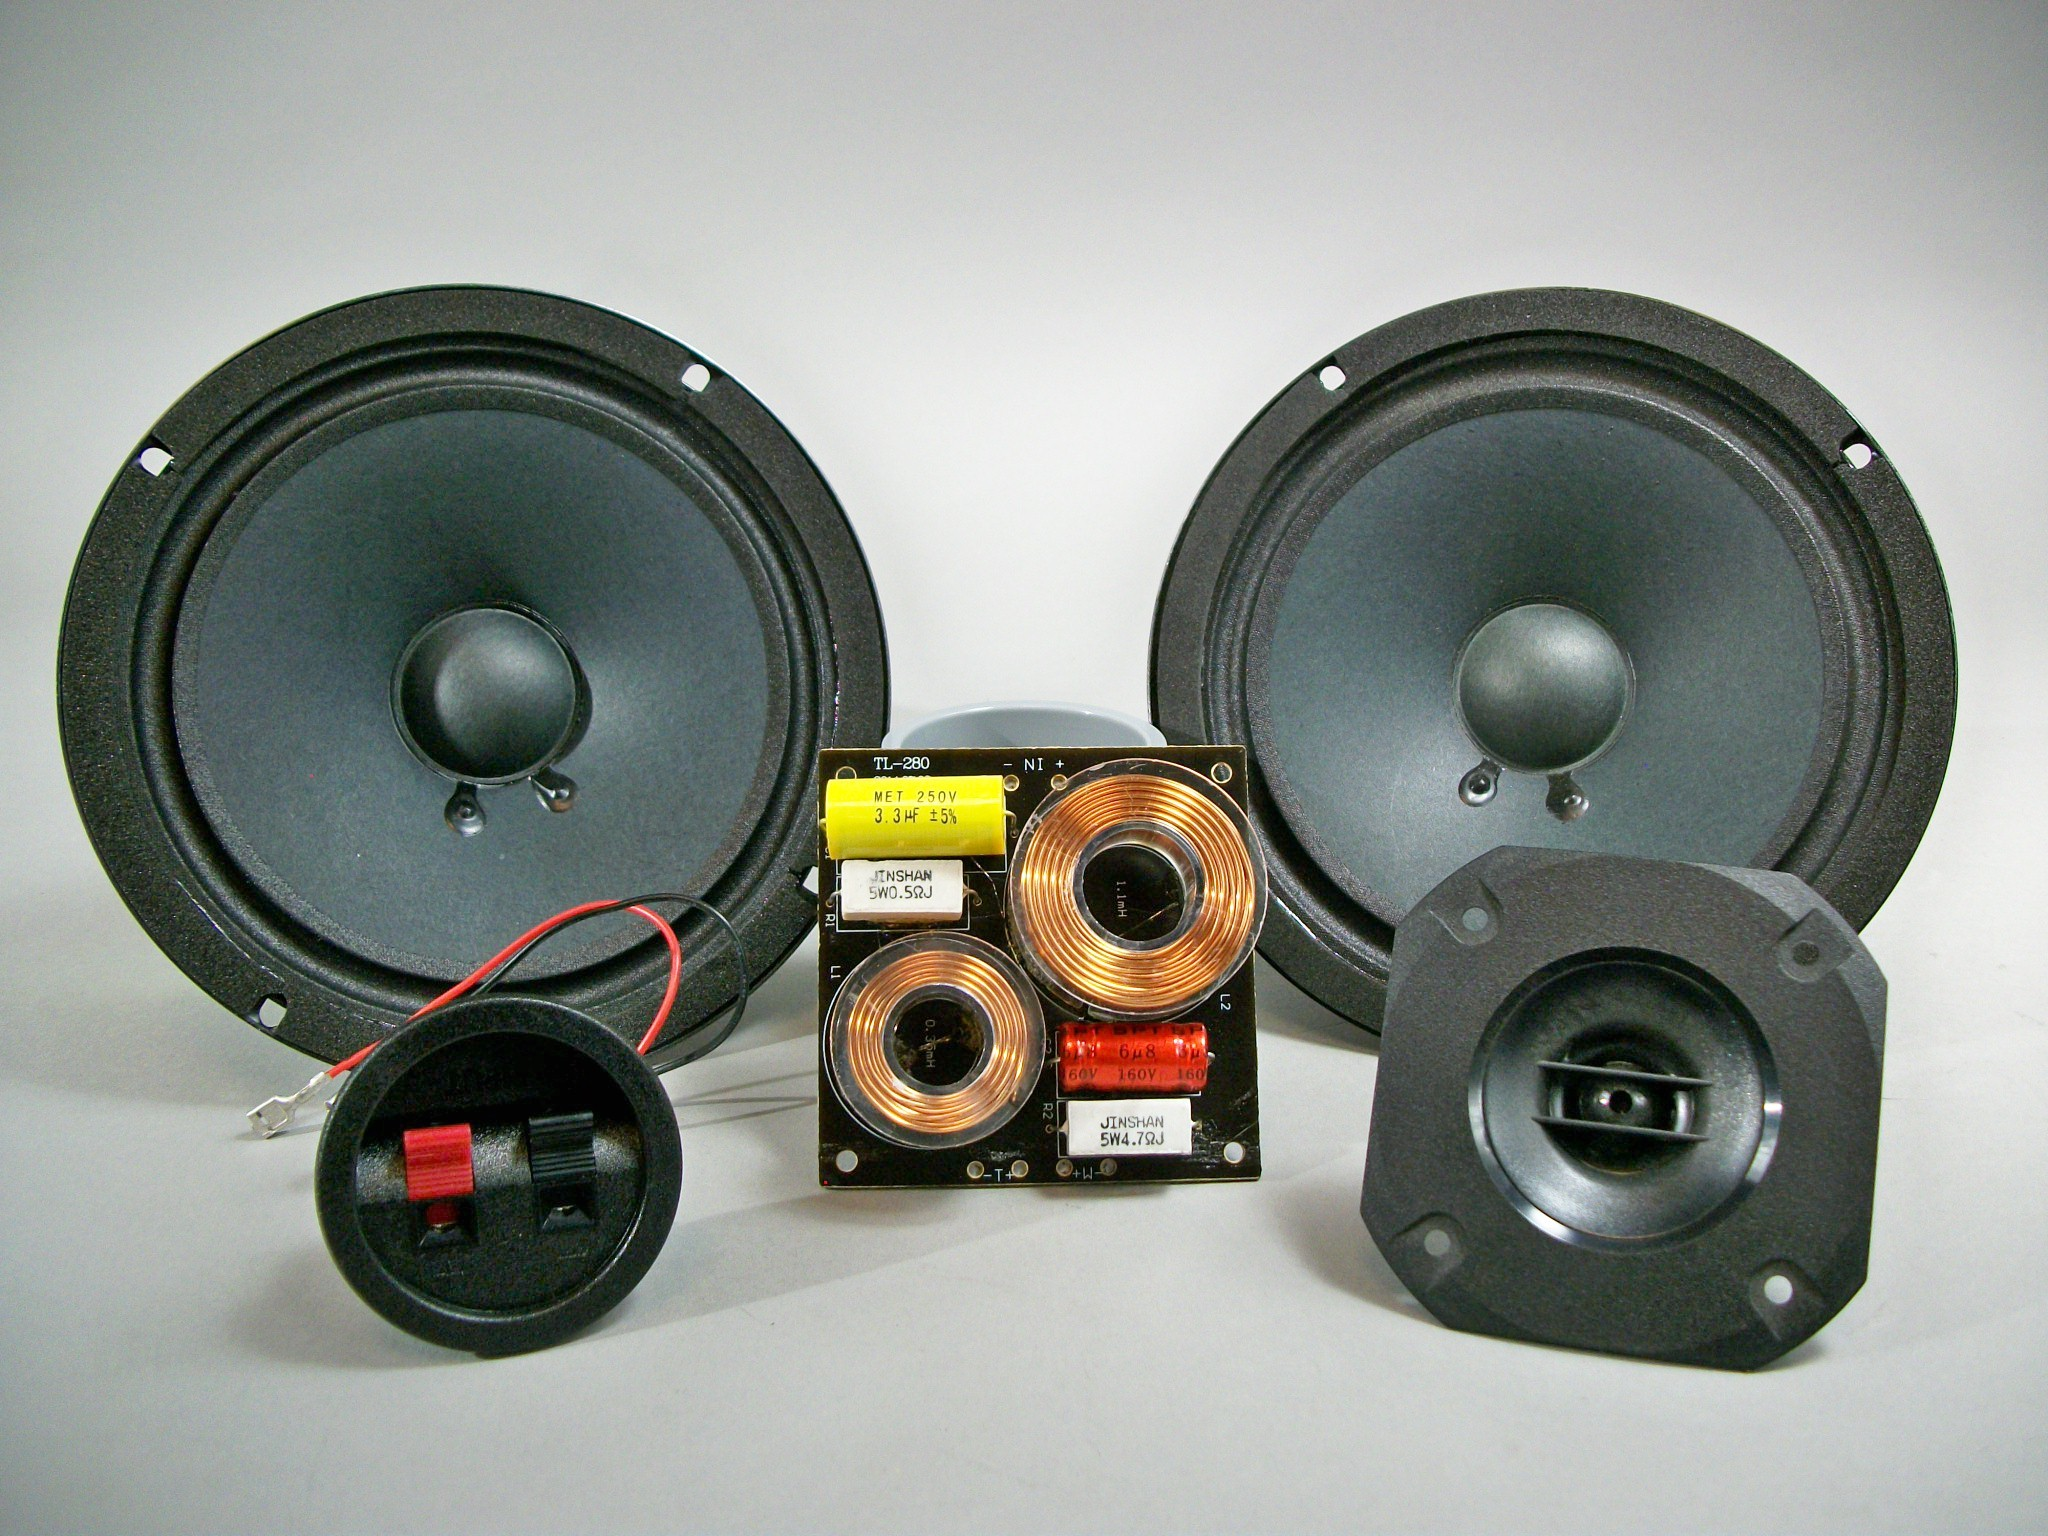 Build Some Boxes and Have a Great Center Channel Speaker!!!